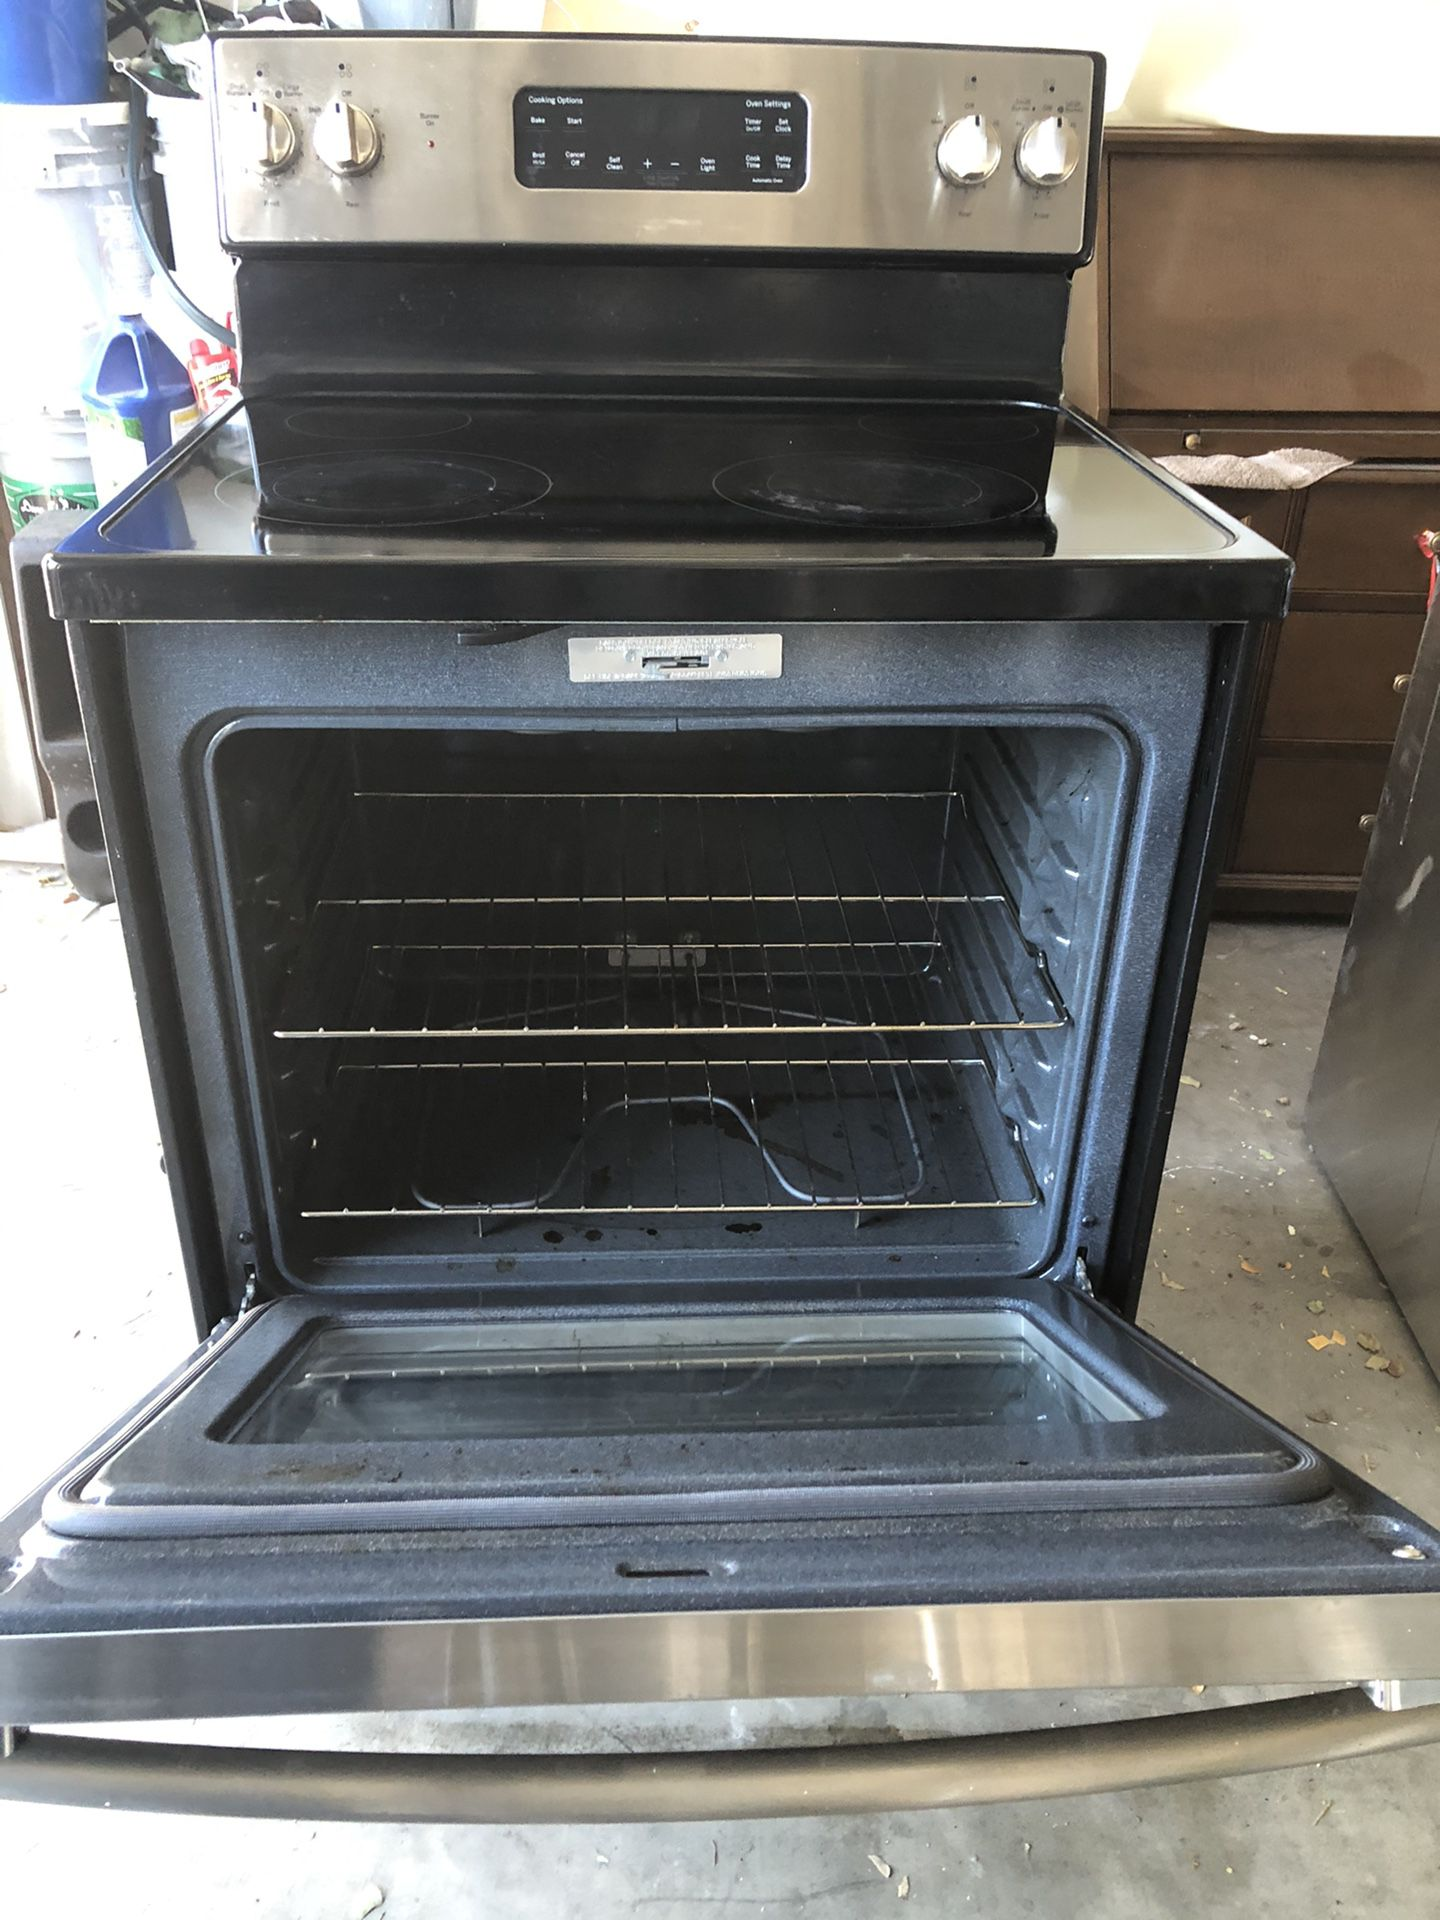 GE Electric Range Stainless Steel Good Condition Everything Work Perfect